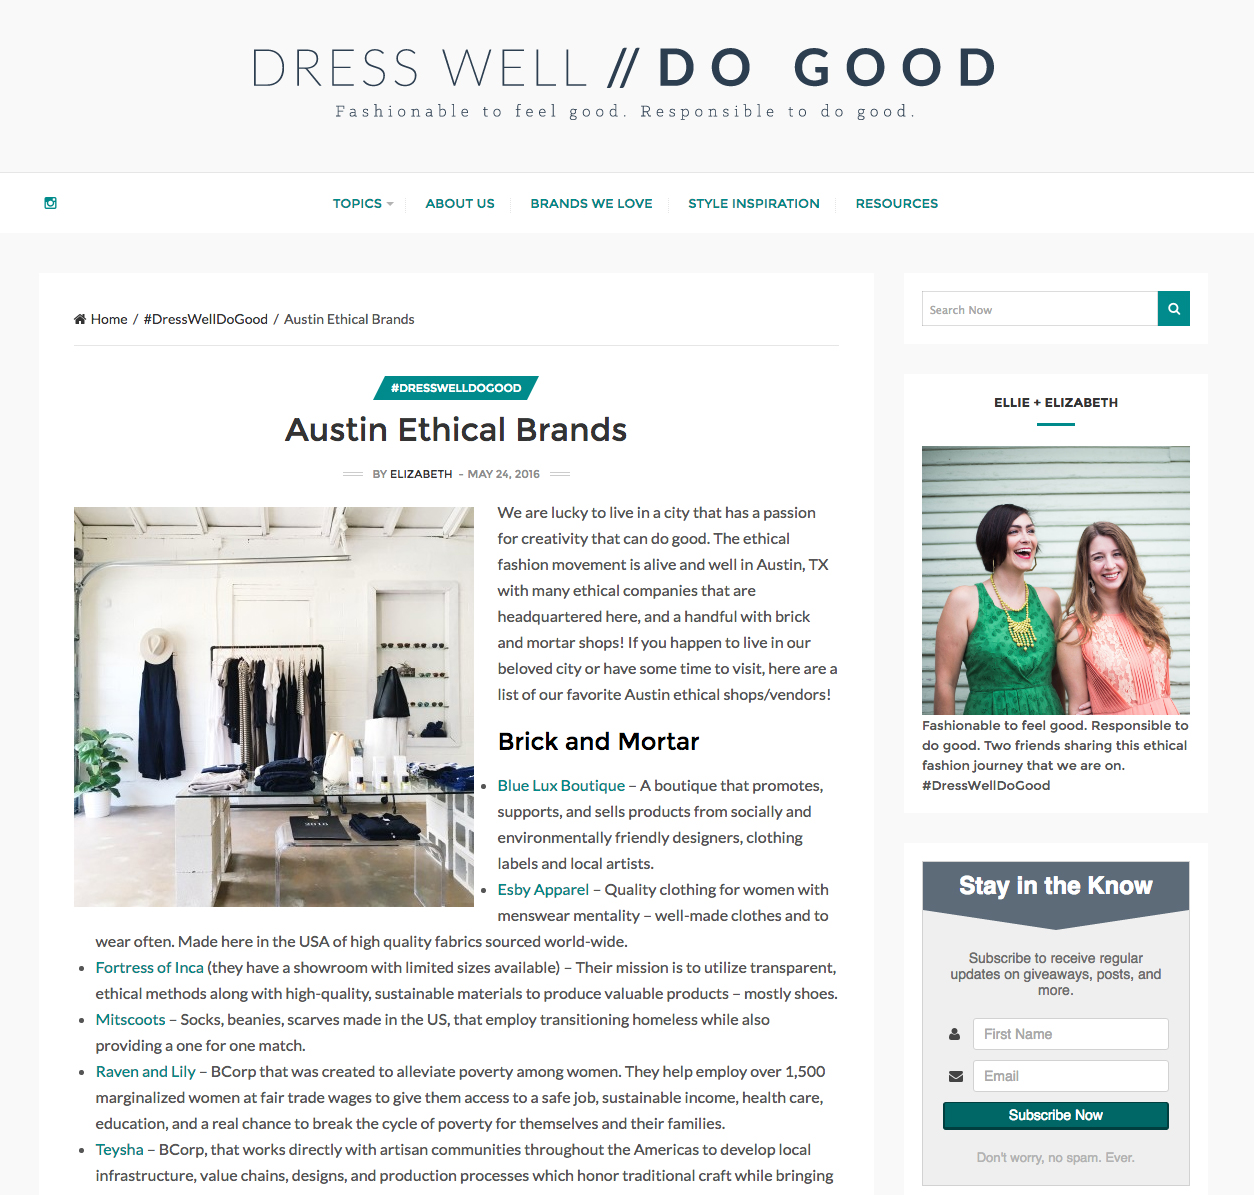 dress well do good image.jpg